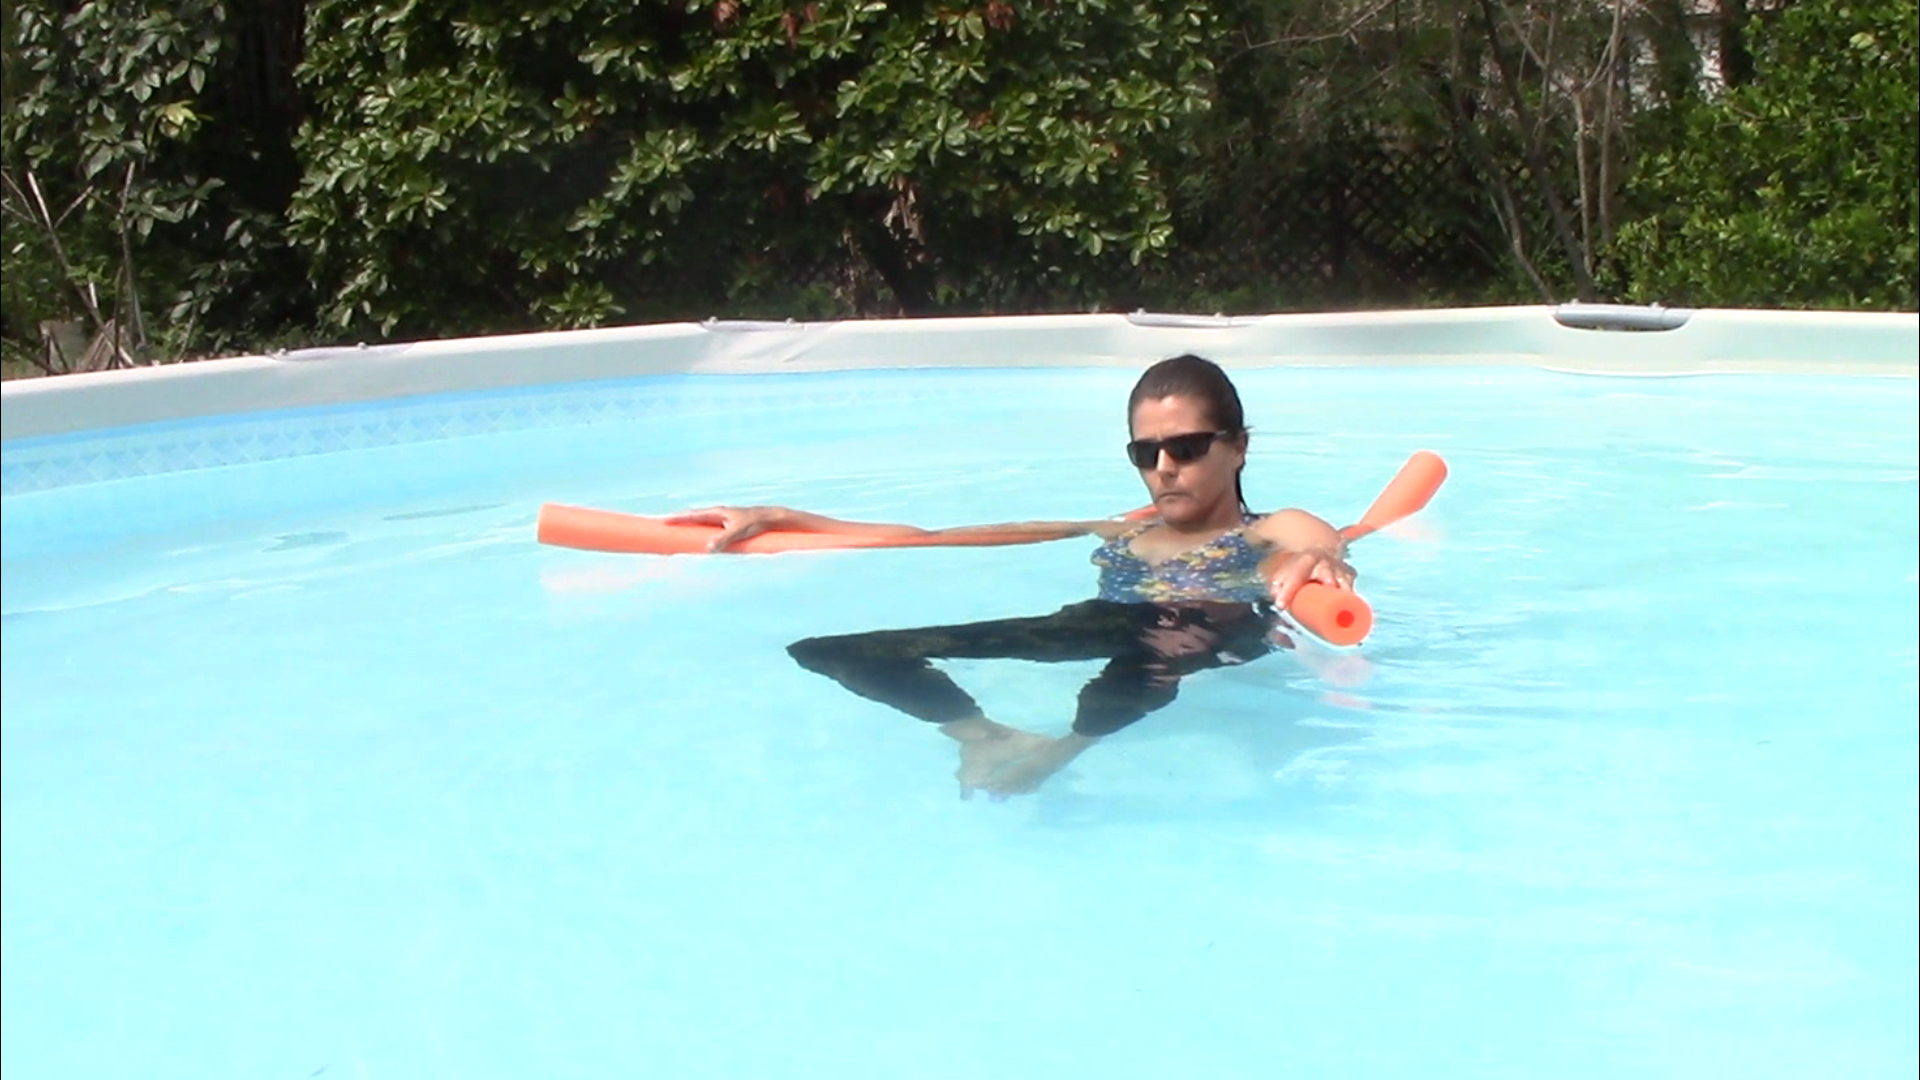 Woman in the pool with two pool noodles